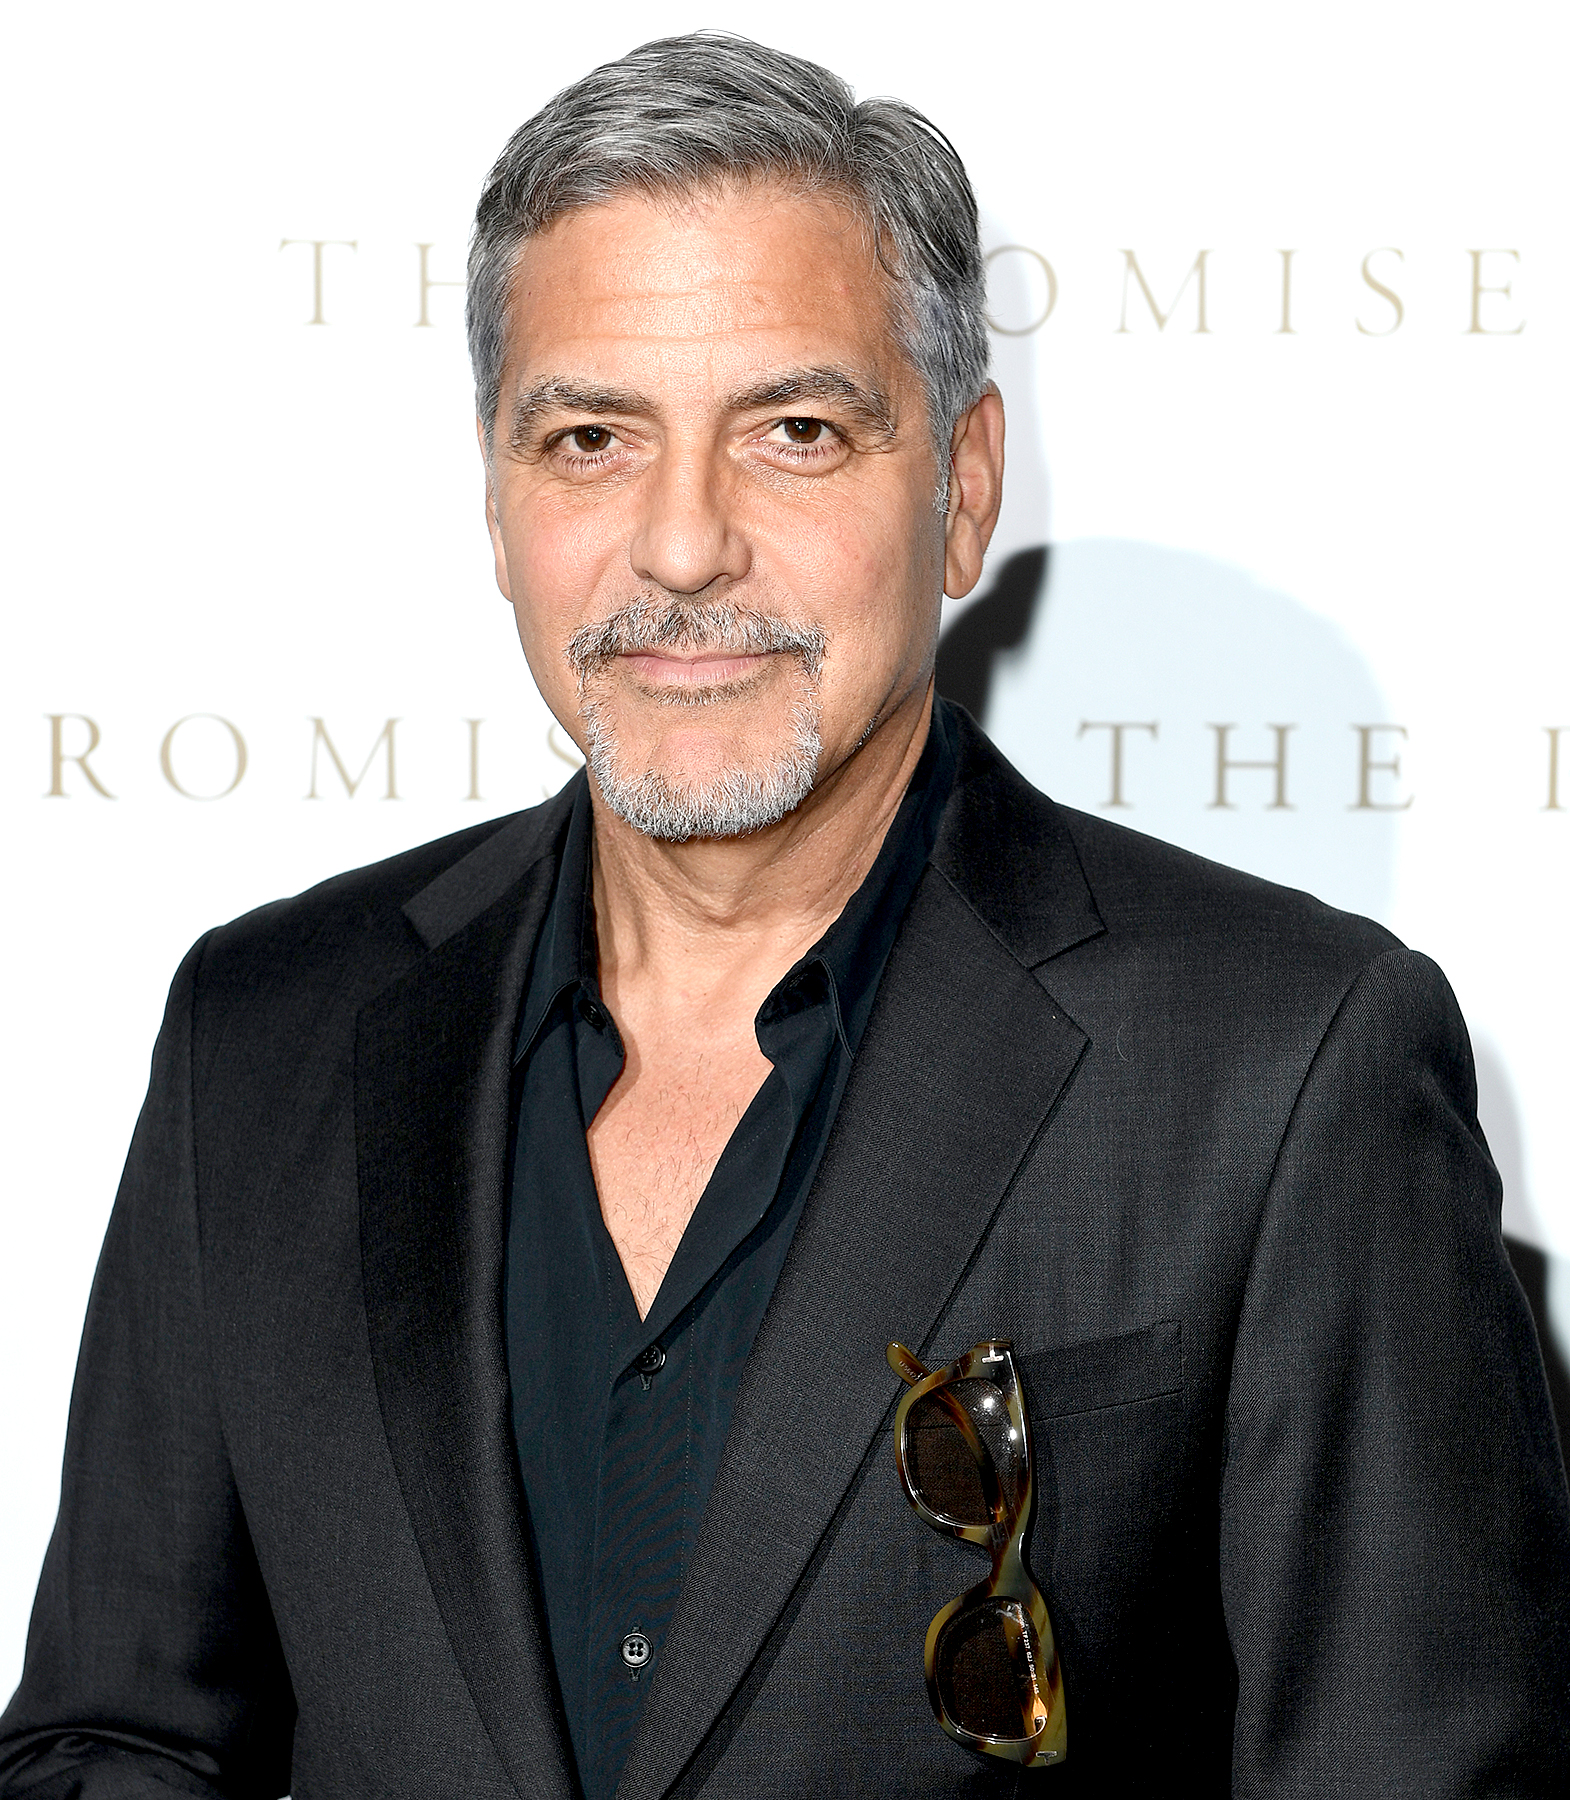 George Clooney Doug Peters  PA Images